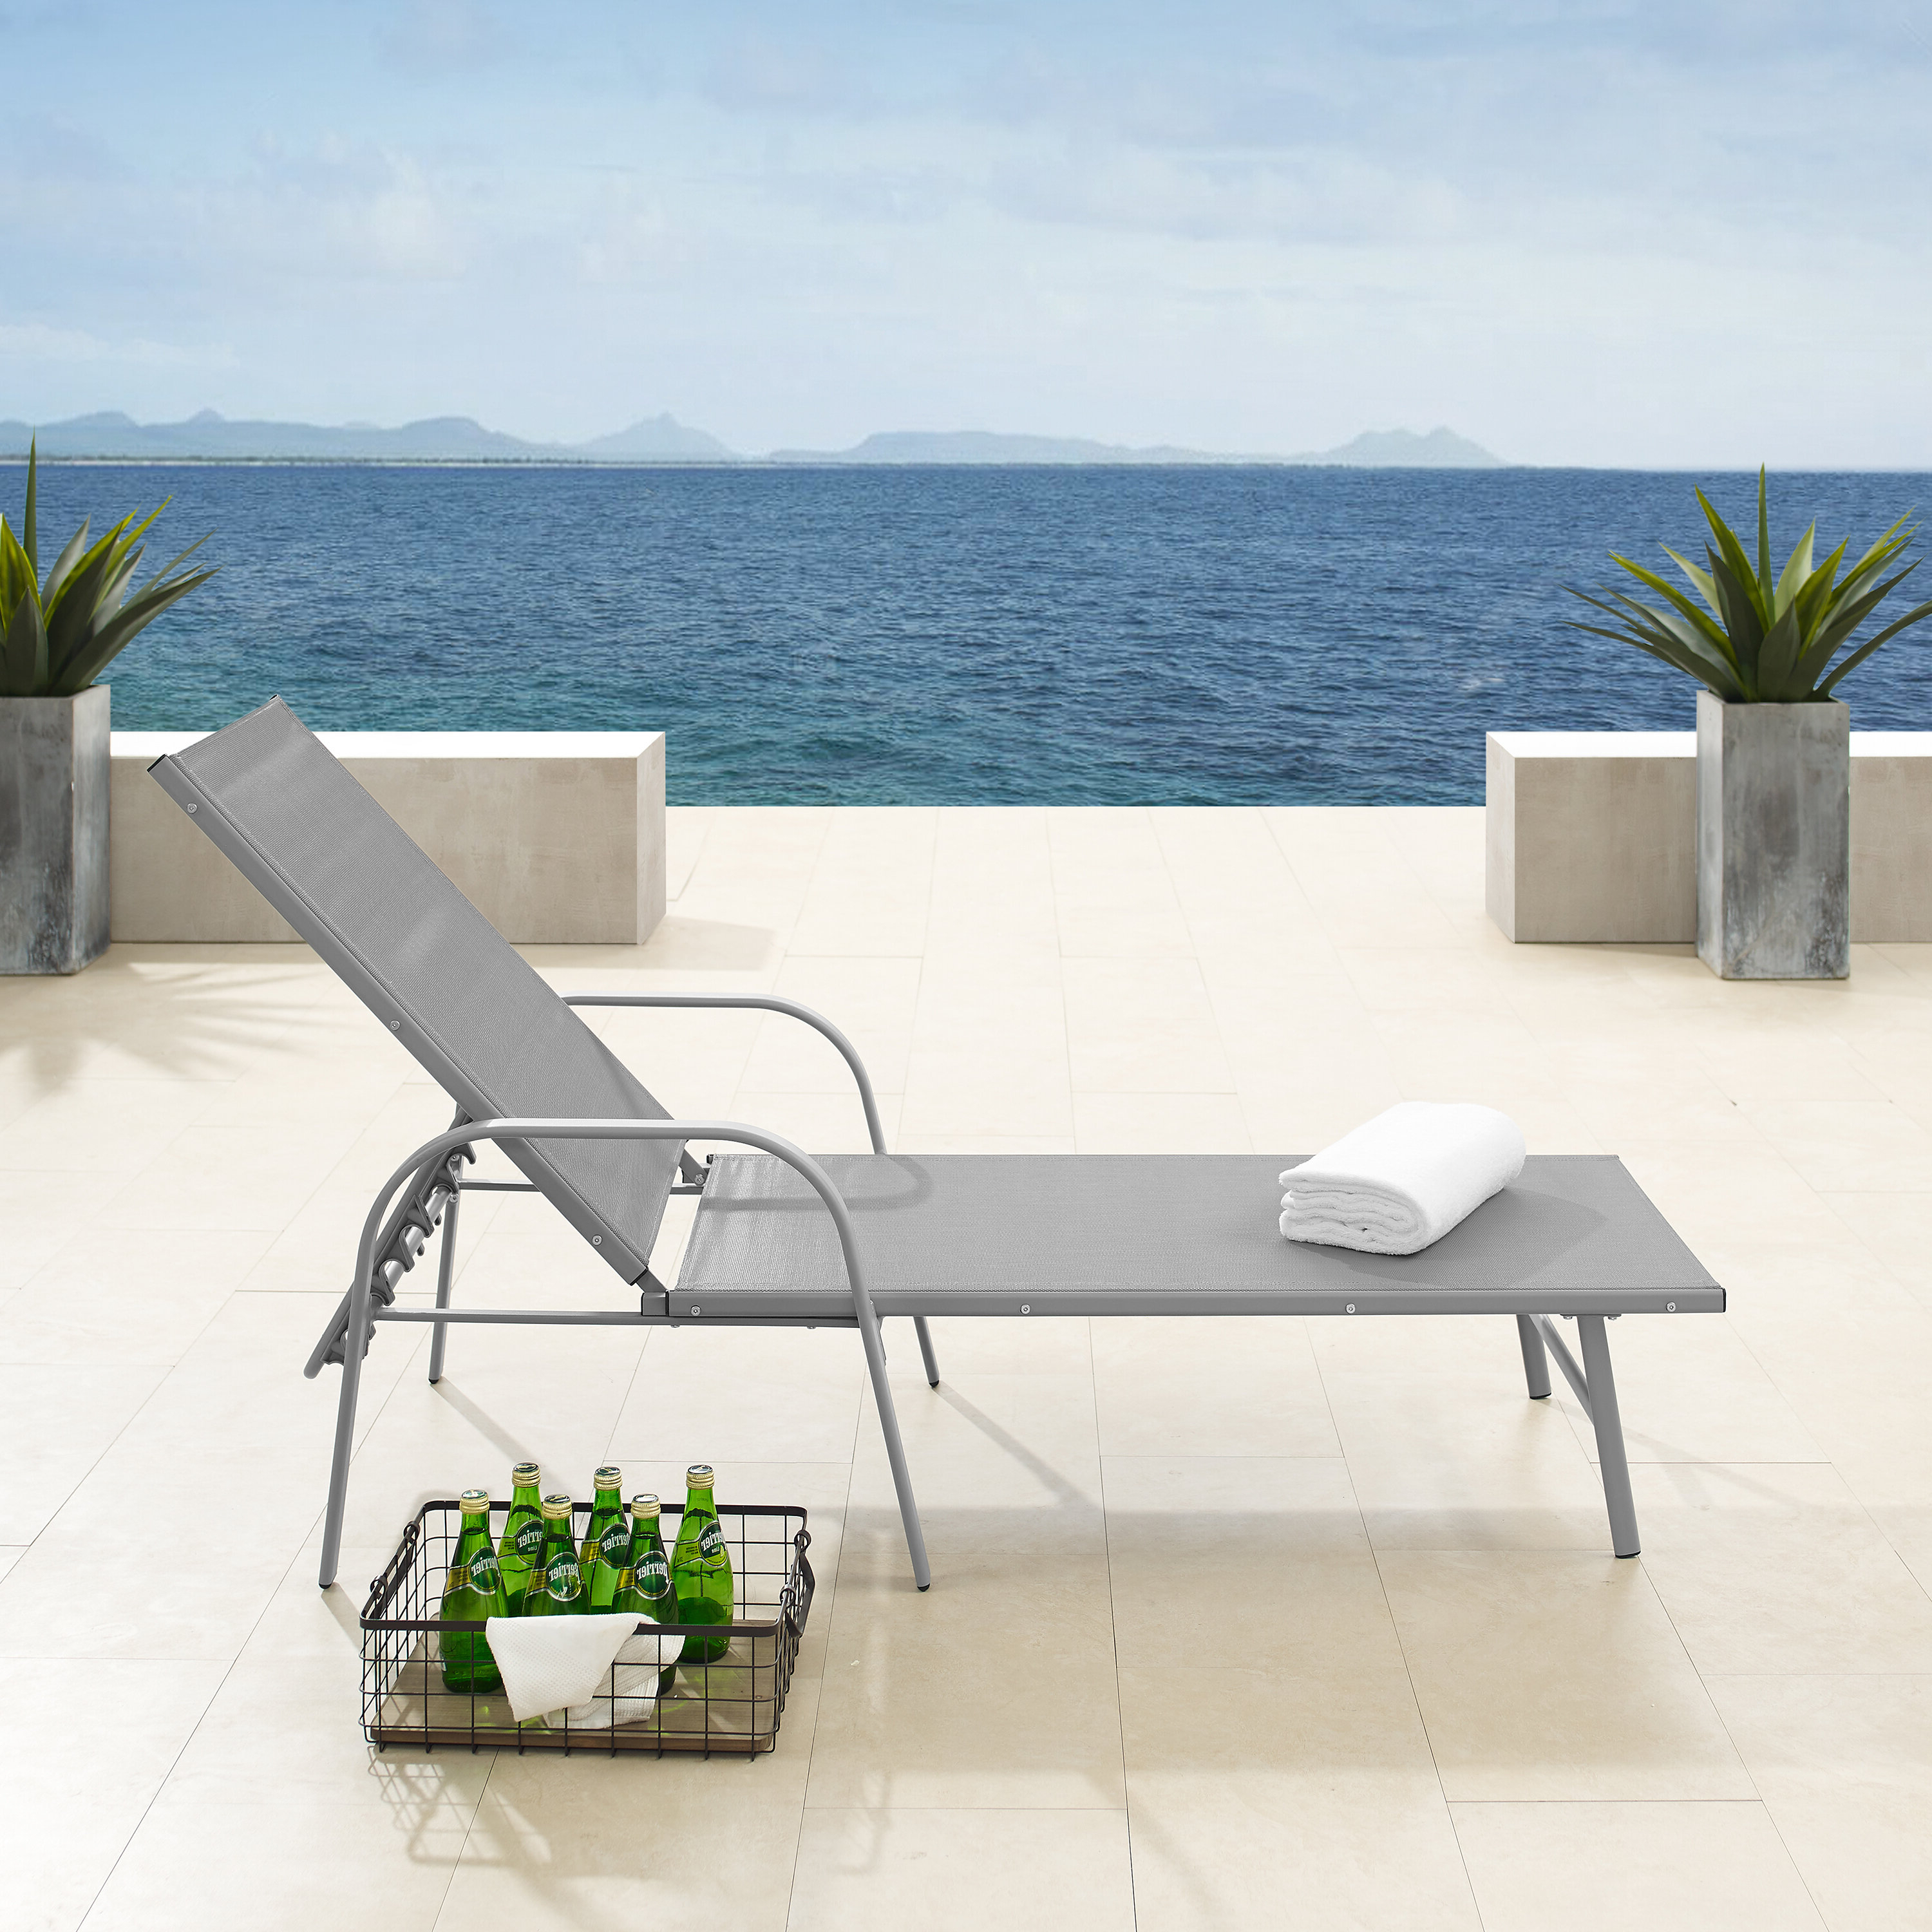 Preferred Fabric Reclining Outdoor Chaise Lounges Intended For Vassilieva Reclining Chaise Lounge (View 24 of 25)